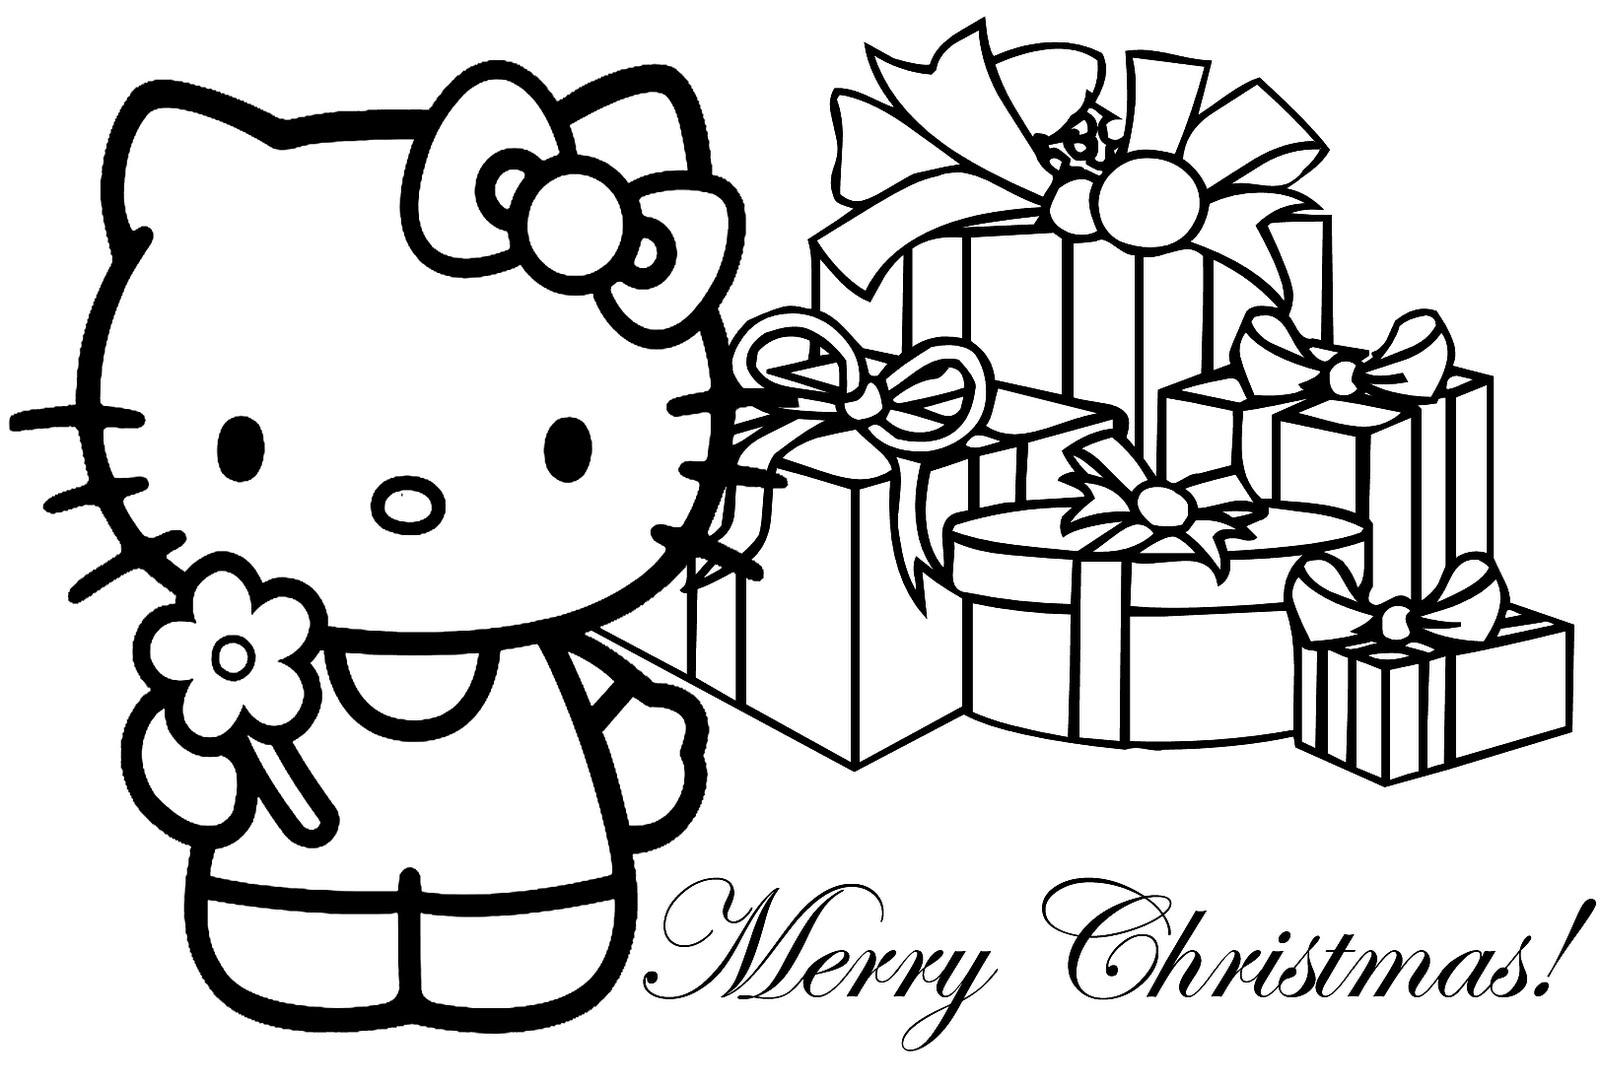 Christmas Coloring And Activity Pages With Free Printable Merry